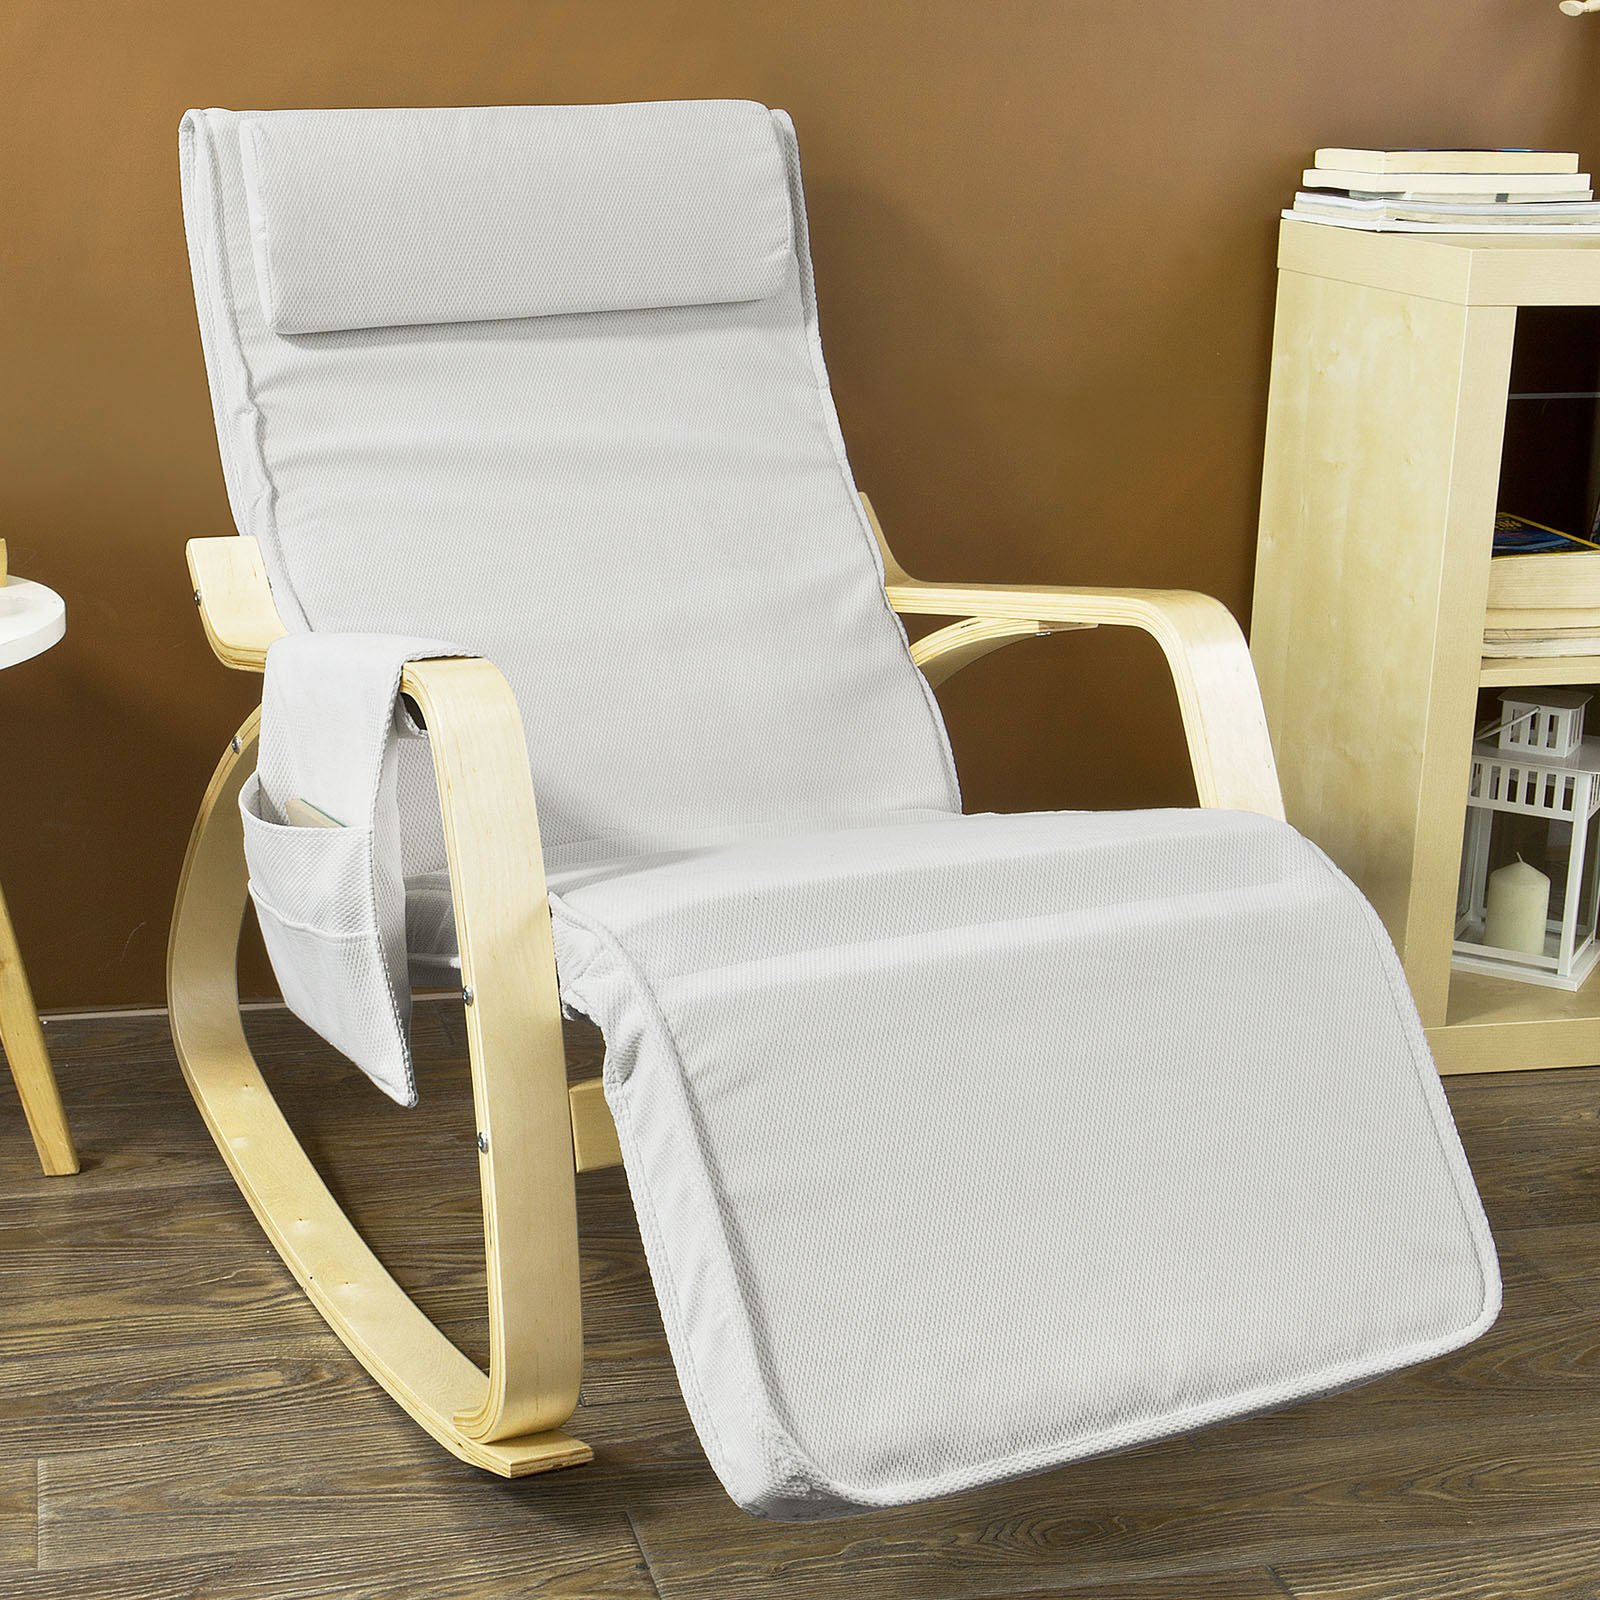 Haotian Comfortable Relax Rocking Chair, Gliders,Lounge Chair Recliners with Adjustable Footrest & Side Pocket,FST18 (FST18-W)